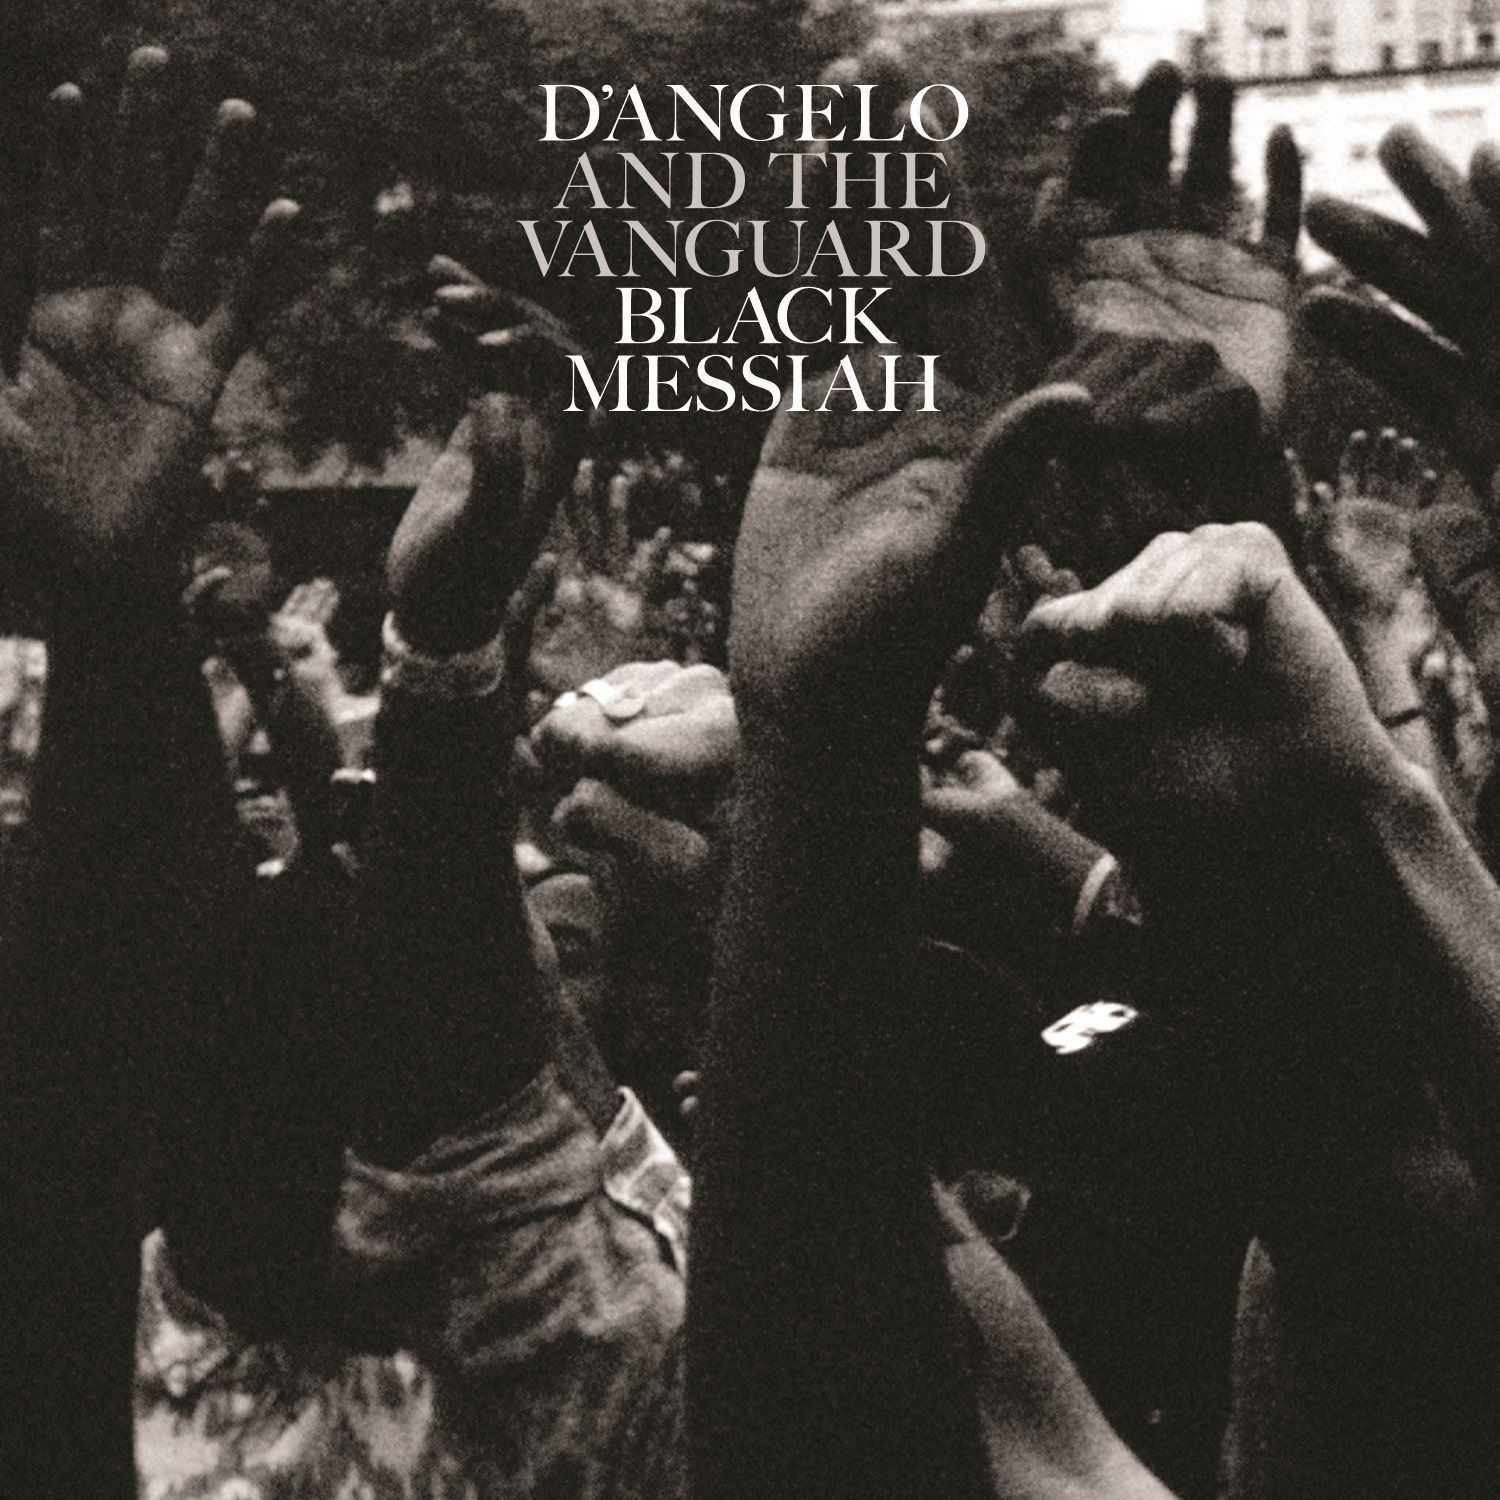 Black Messiah - D'Angelo and The Vanguard - Musik - RCA - 0888750565525 - 15. desember 2014